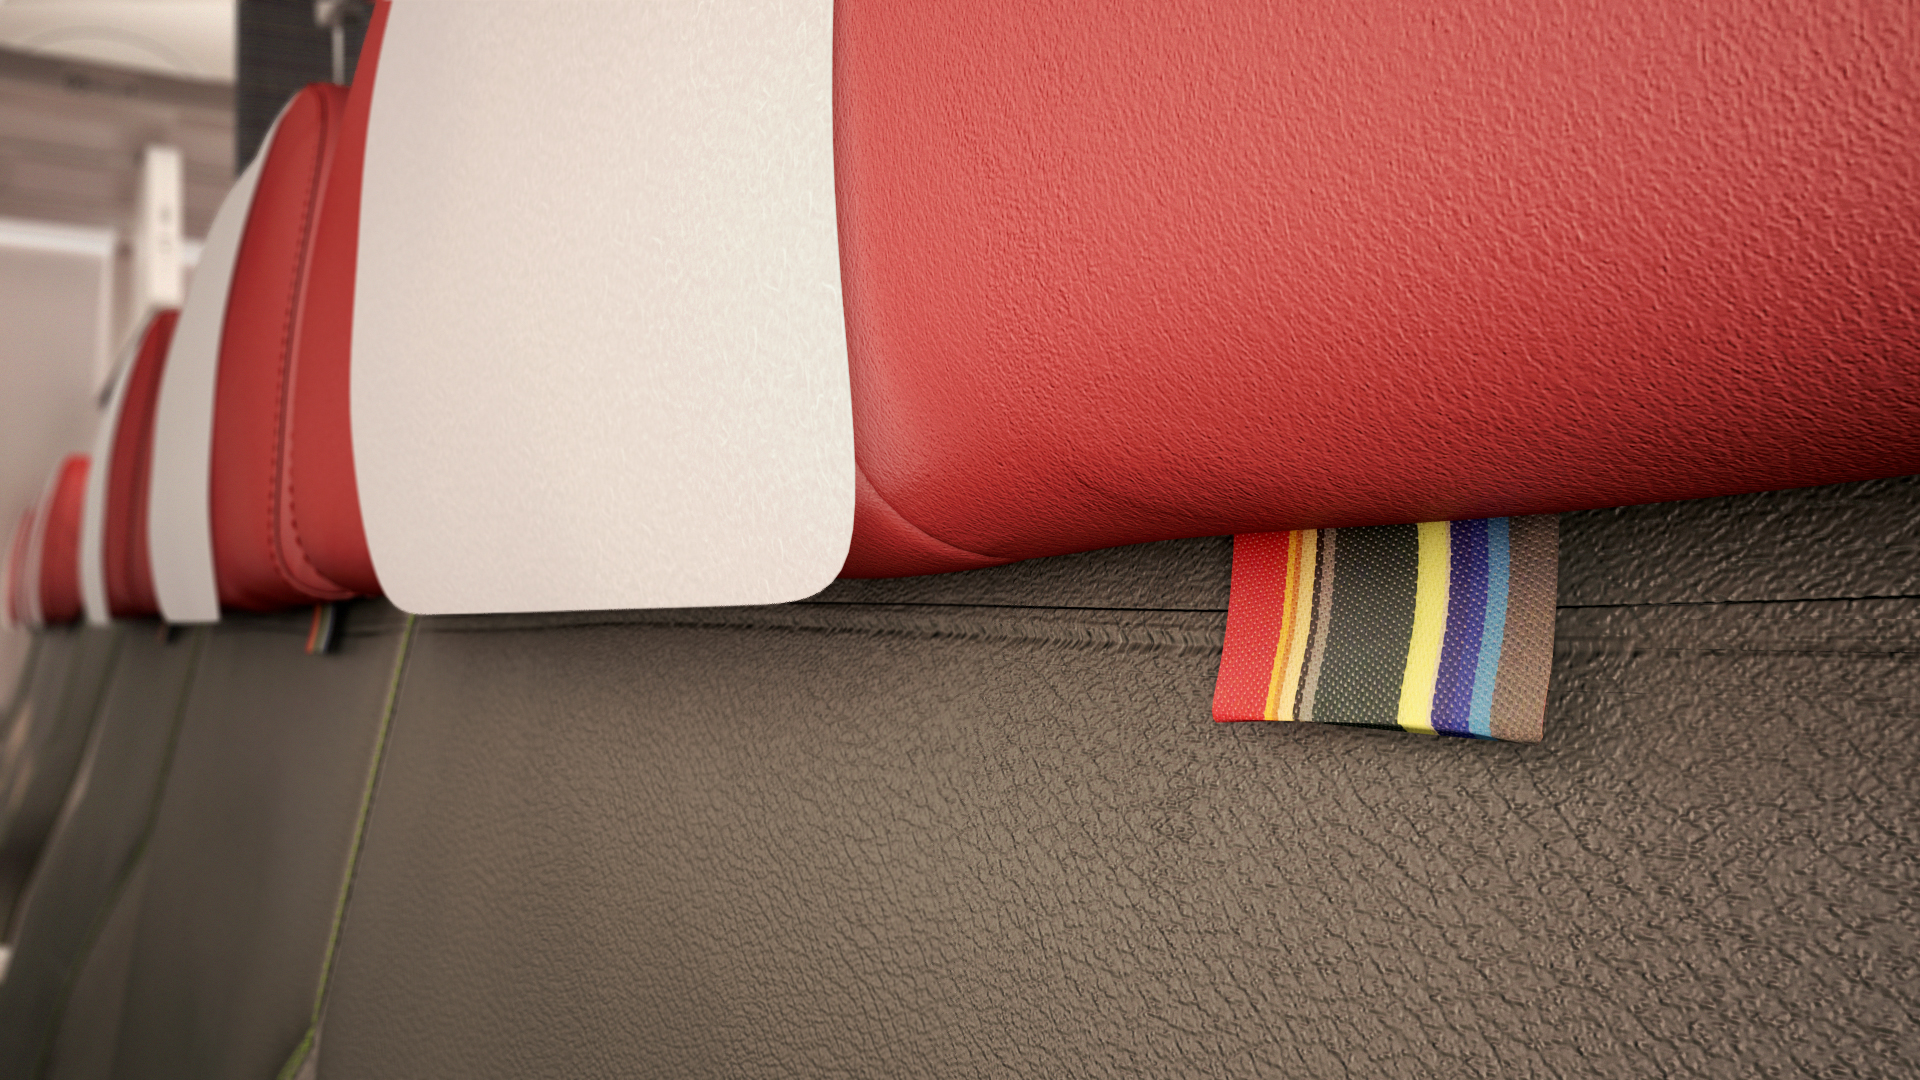 South african airways reveal new short haul interiors thedesignair - The Fabric For The Seats In The Short Haul Cabins Was Designed Incorporating Four Colors And Two Different Leather Textures For The New Long Haul Cabins